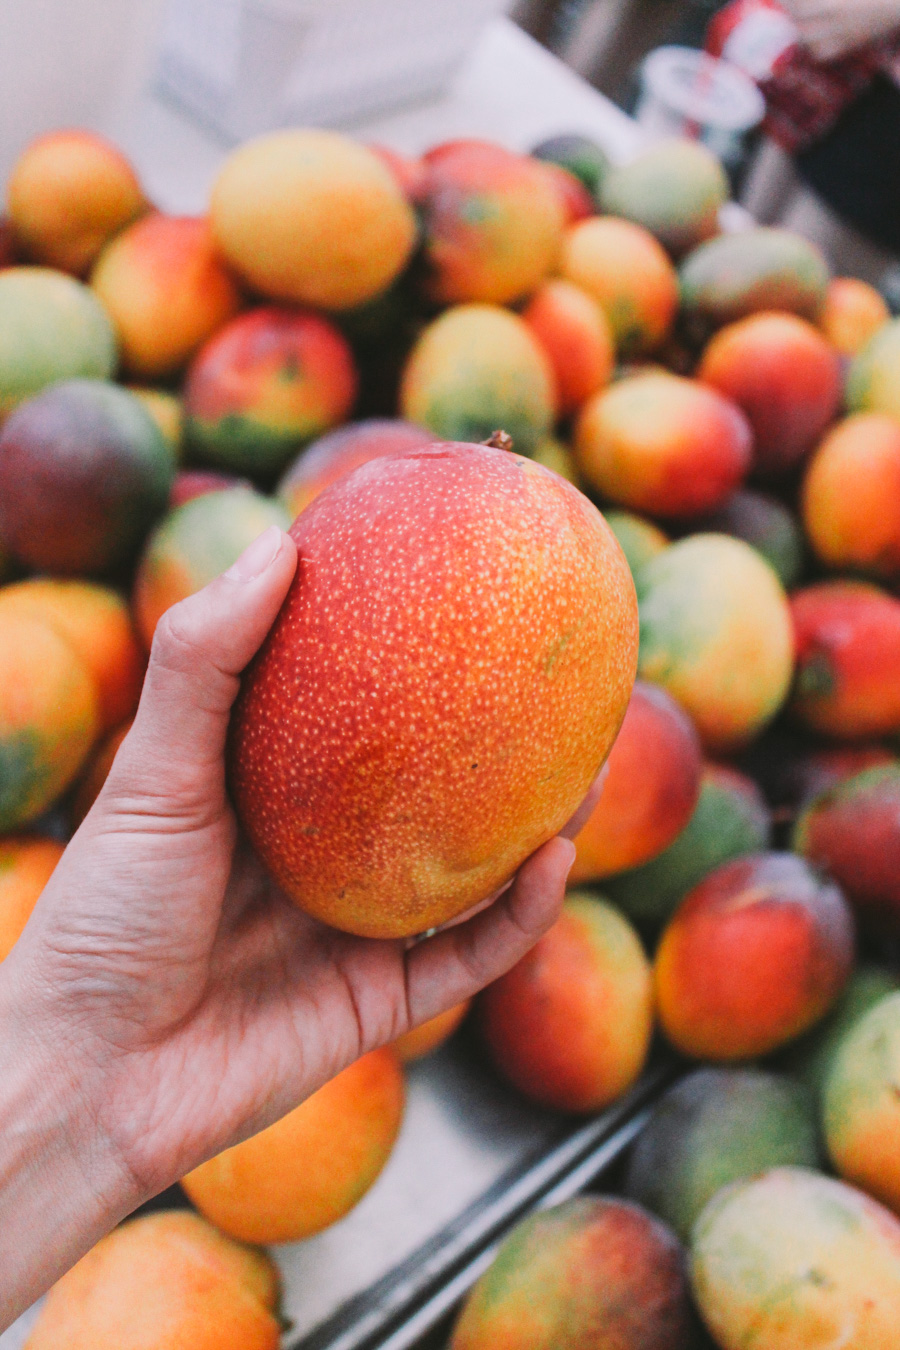 kcc farmer's market | honolulu, hawaii via playswellwithbutter | the kcc farmer's market is easily the top recommendation i'd have for any foodie traveling through oahu. we make our way back year after year because it is truly a food lover's vacation dream: it is the best place to taste hawaiian treats & pick up some food souvenirs to bring back to mainland us & share the taste of aloha with your loved ones.